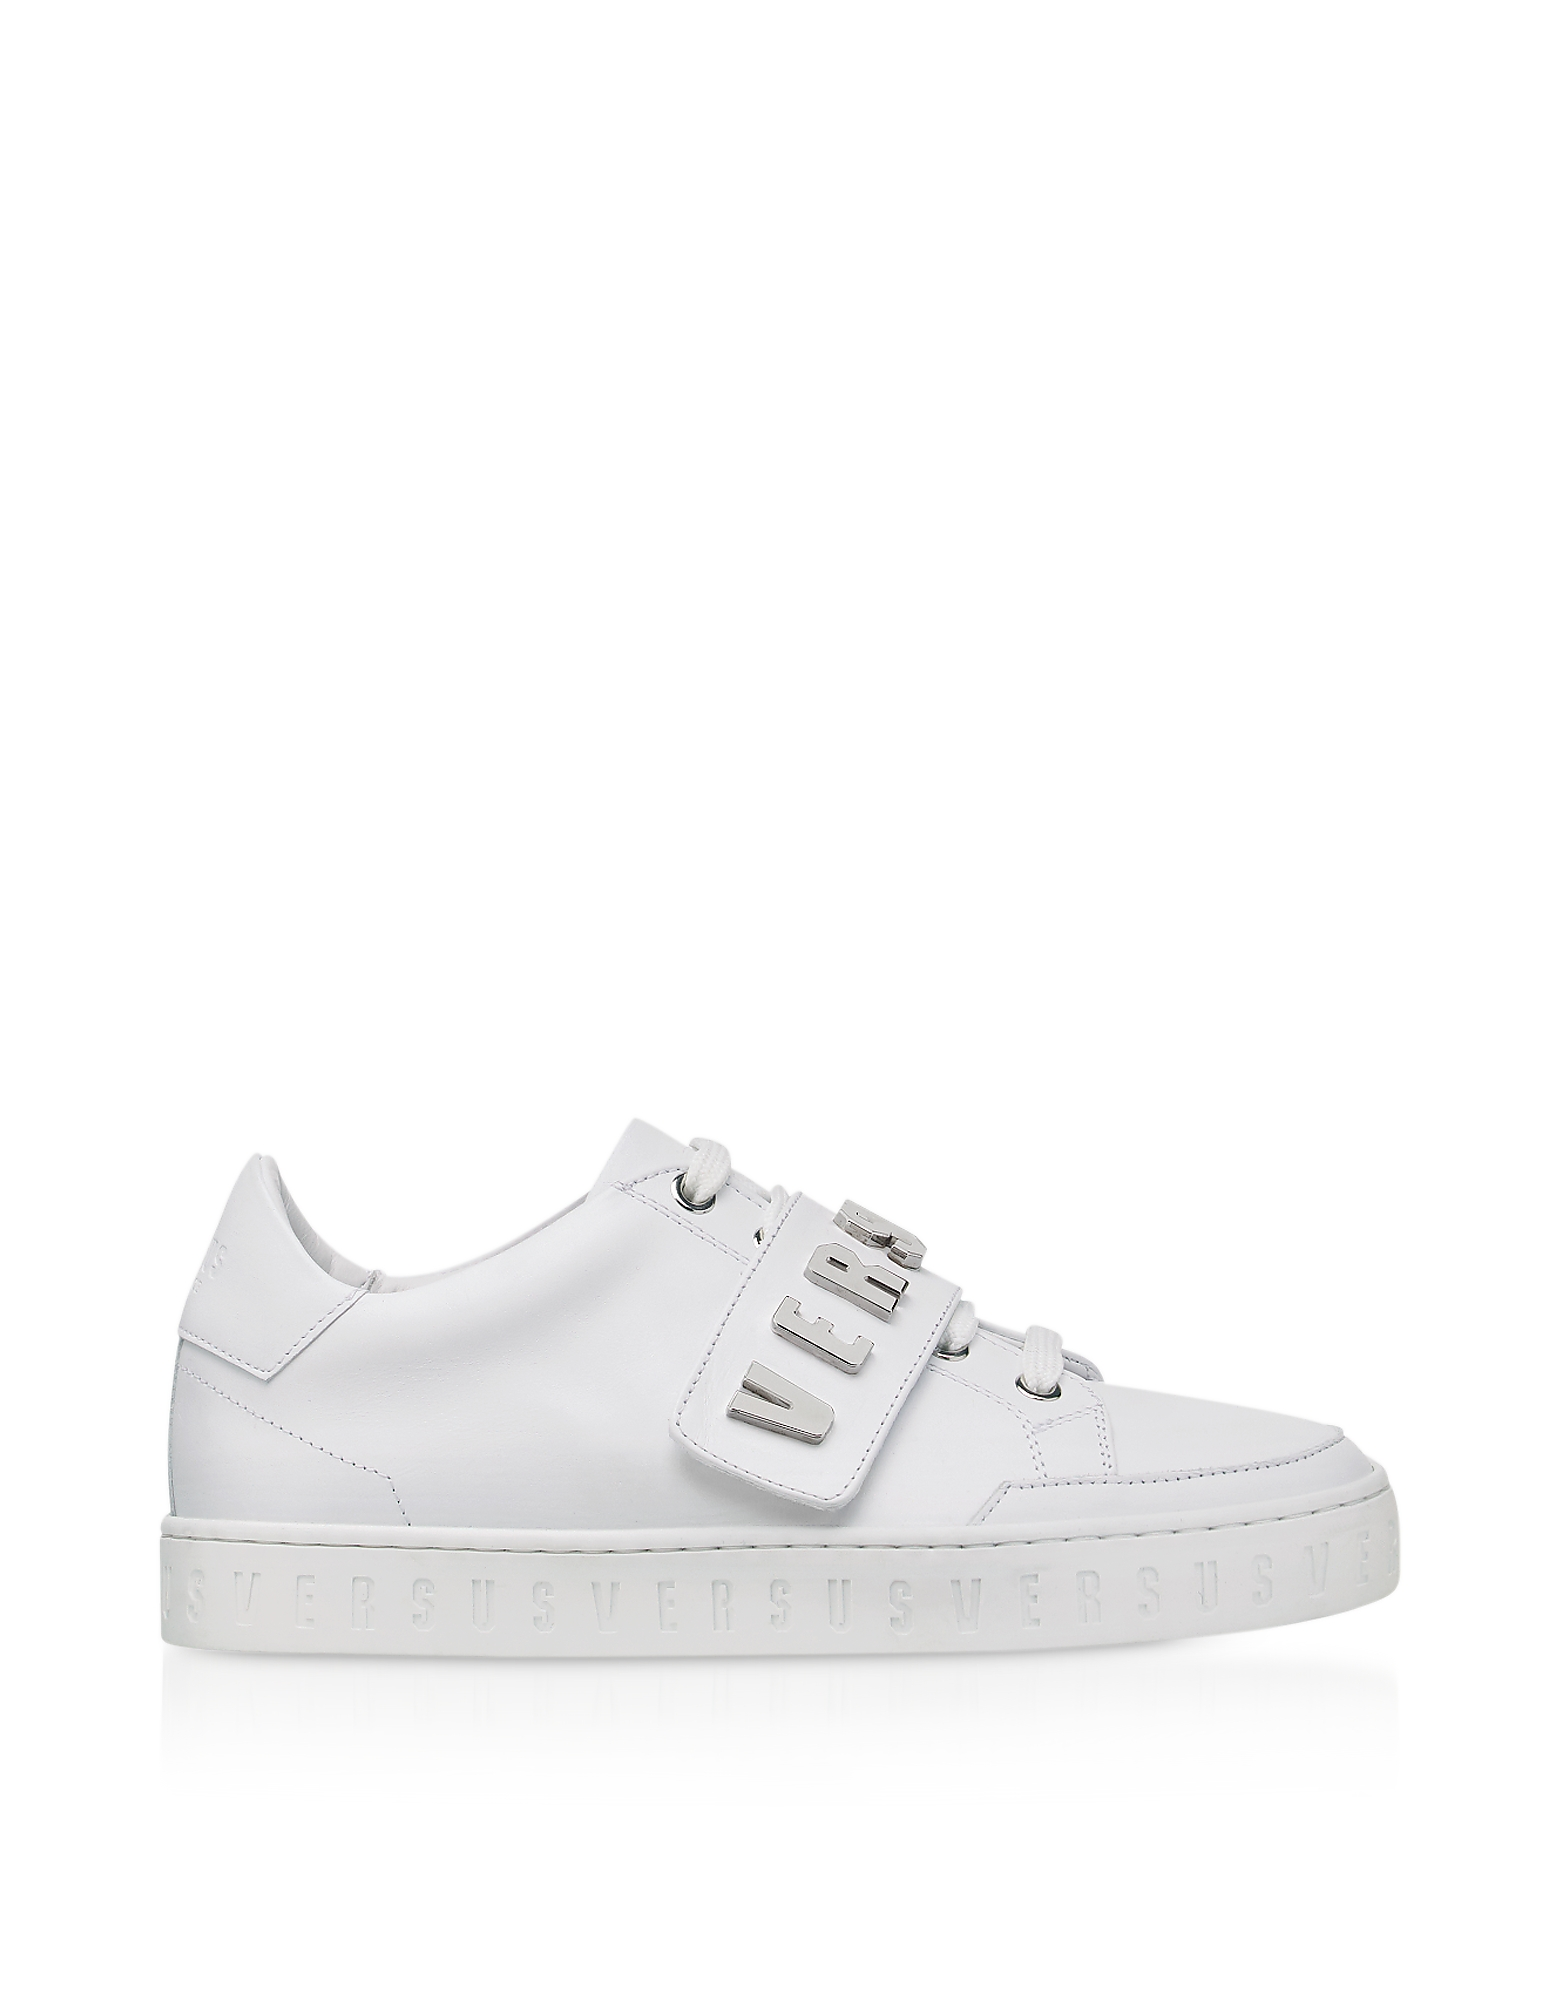 Versace Versus Shoes, Optic White Leather Low Top Trainers w/Silvertone Metal Signature Logo